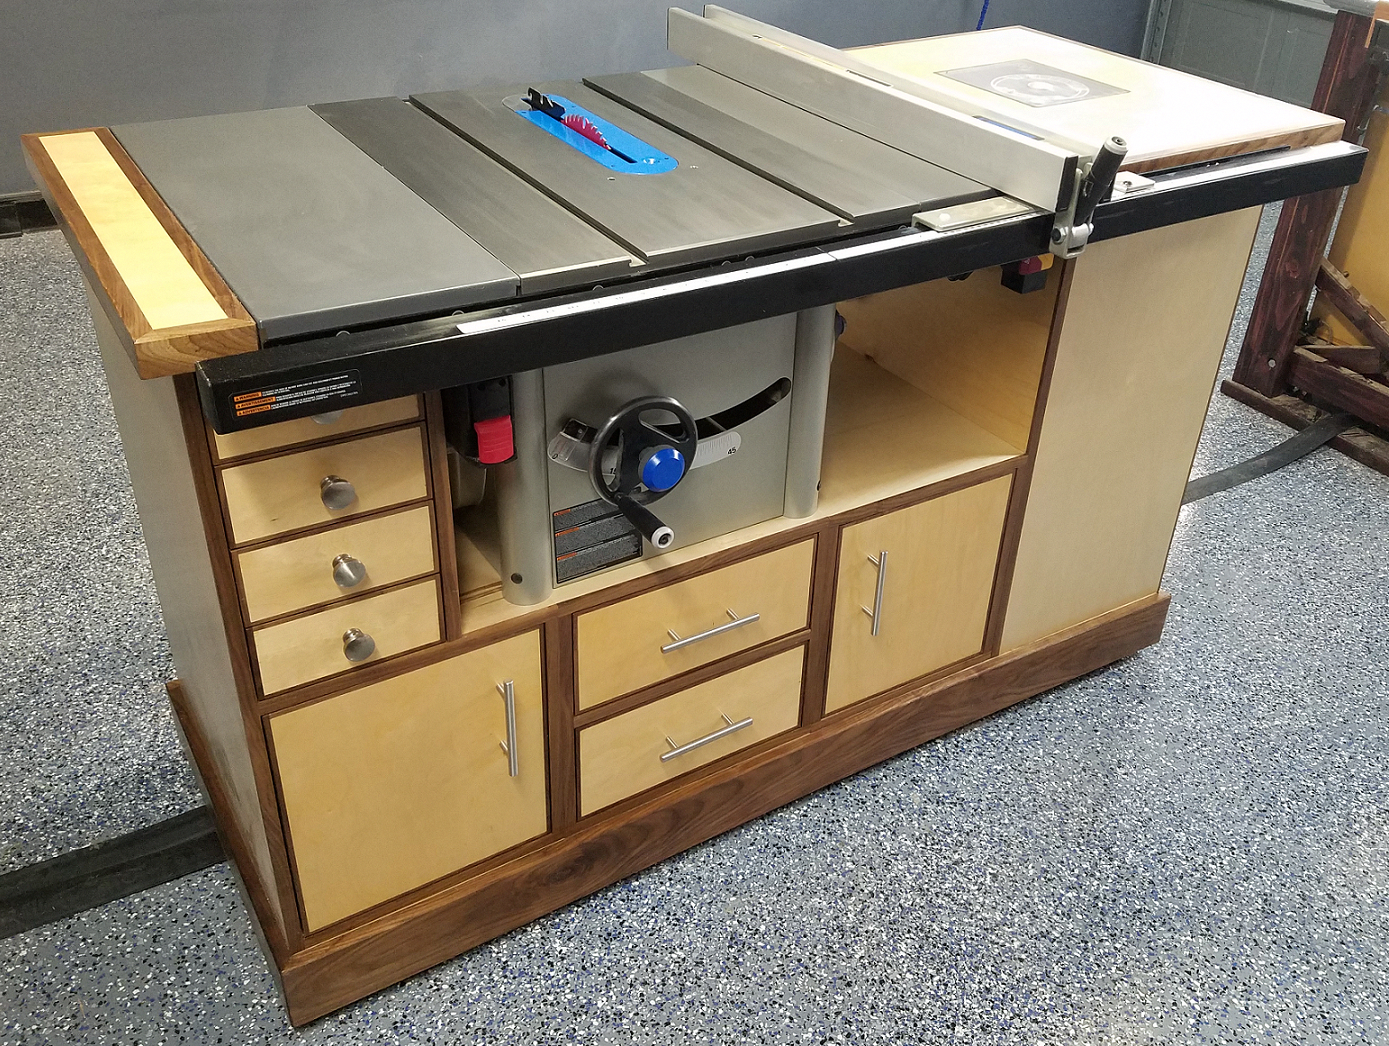 Setting Up Shop Stationary Power Tools In 2020 Table Saw